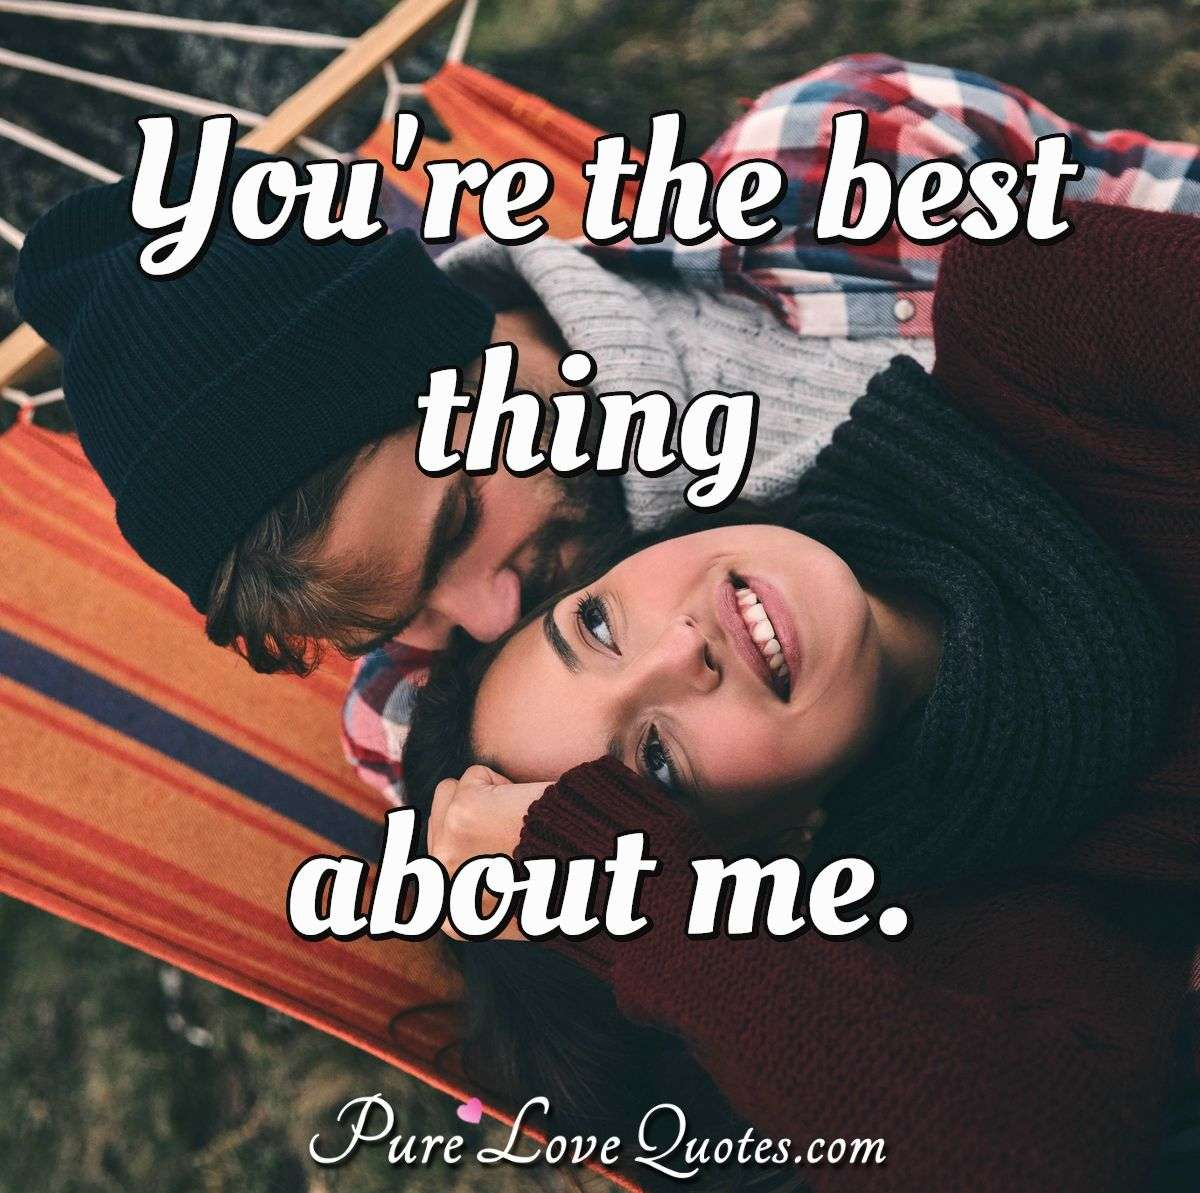 You're the best thing about me. - Anonymous